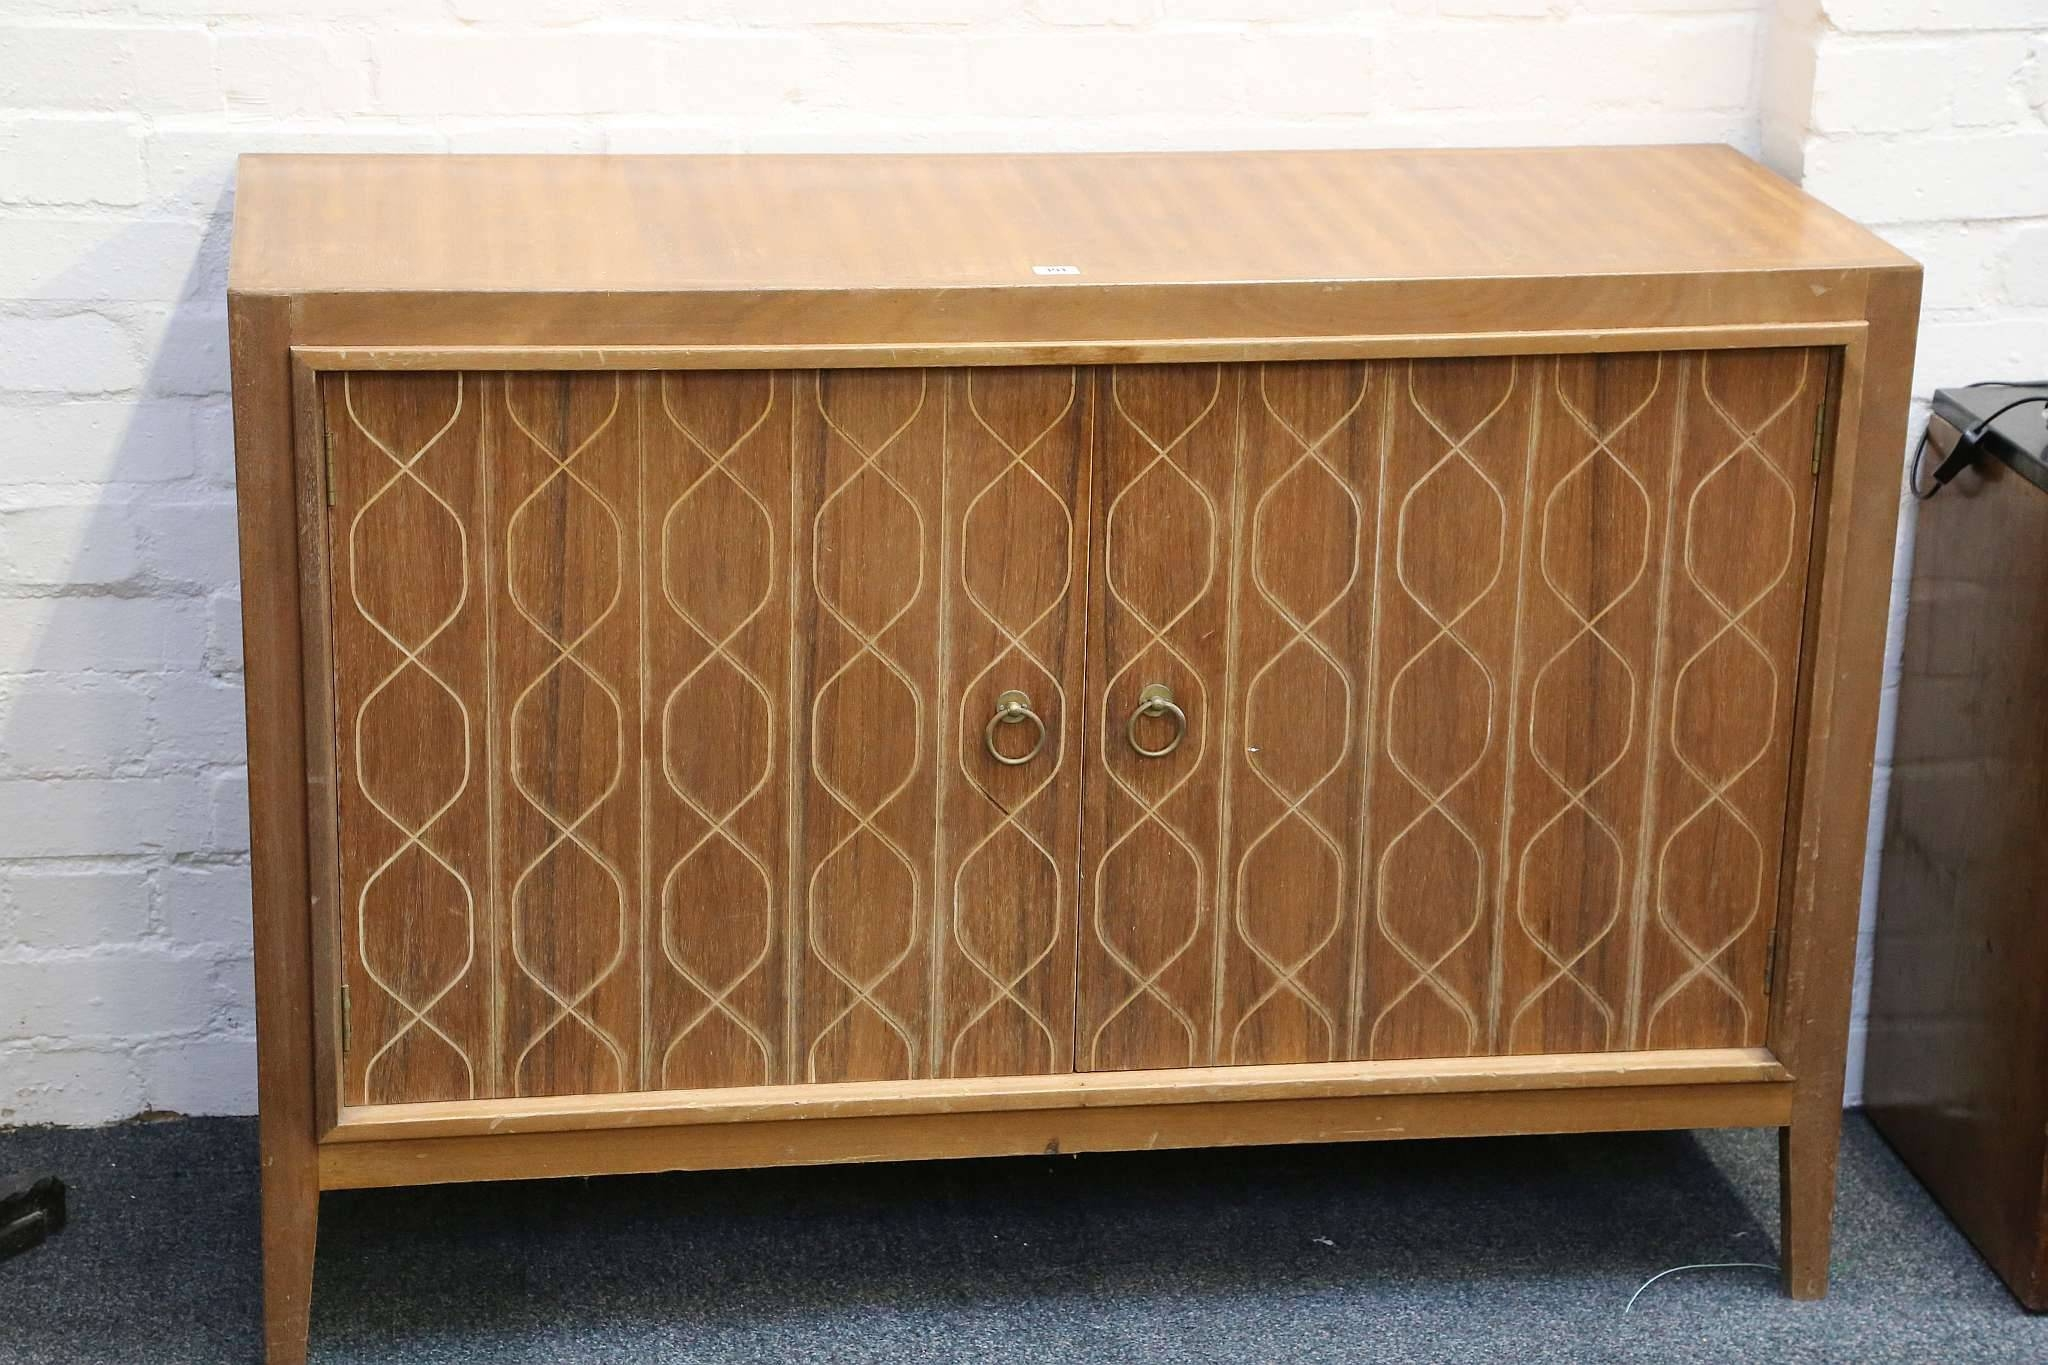 A 1950S Gordon Russell Teak Double Helix Sideboard, With Incised Inside Most Popular Gordon Russell Helix Sideboards (#1 of 15)